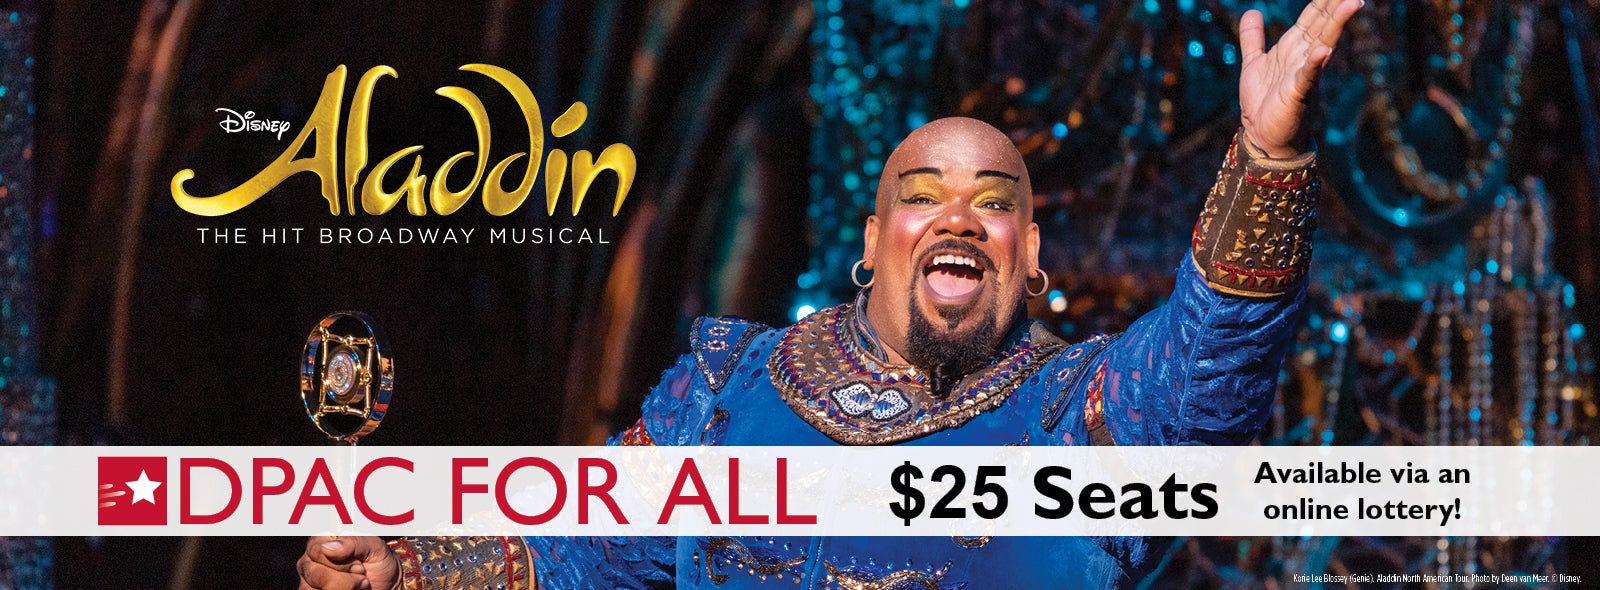 $25 Lottery Tickets Available for Disney's Aladdin